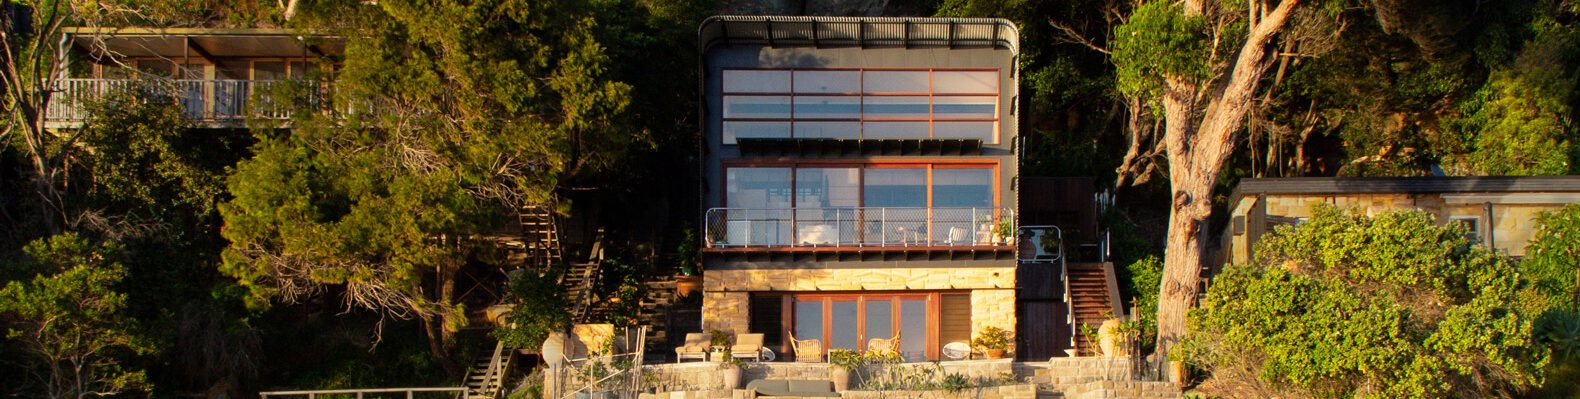 home with glass facade built on shoreline